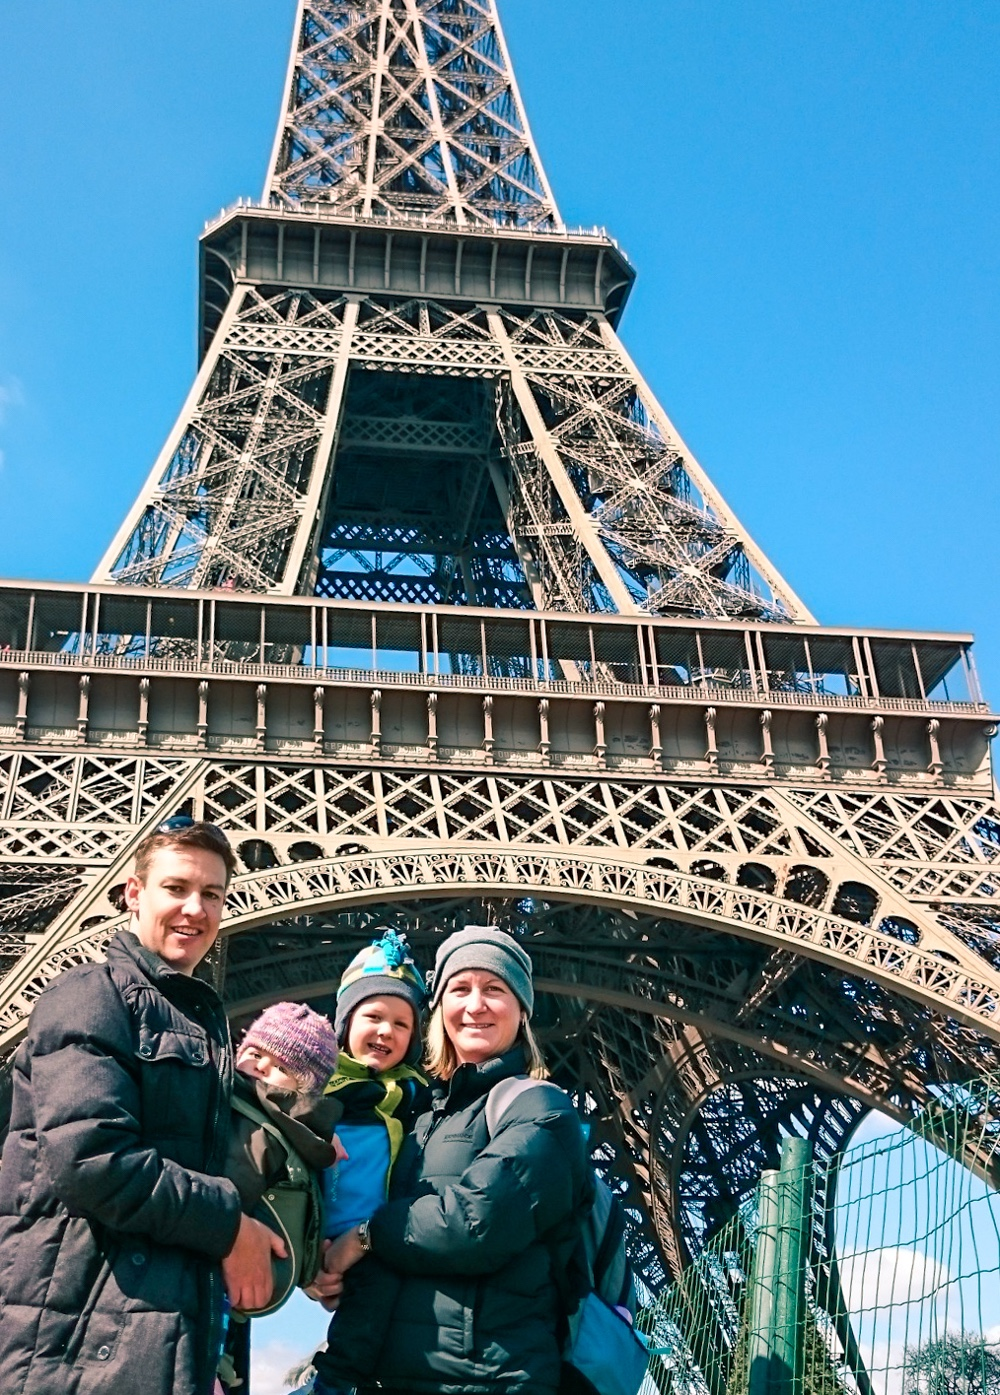 Practical Family Travel Tips from Practical Families